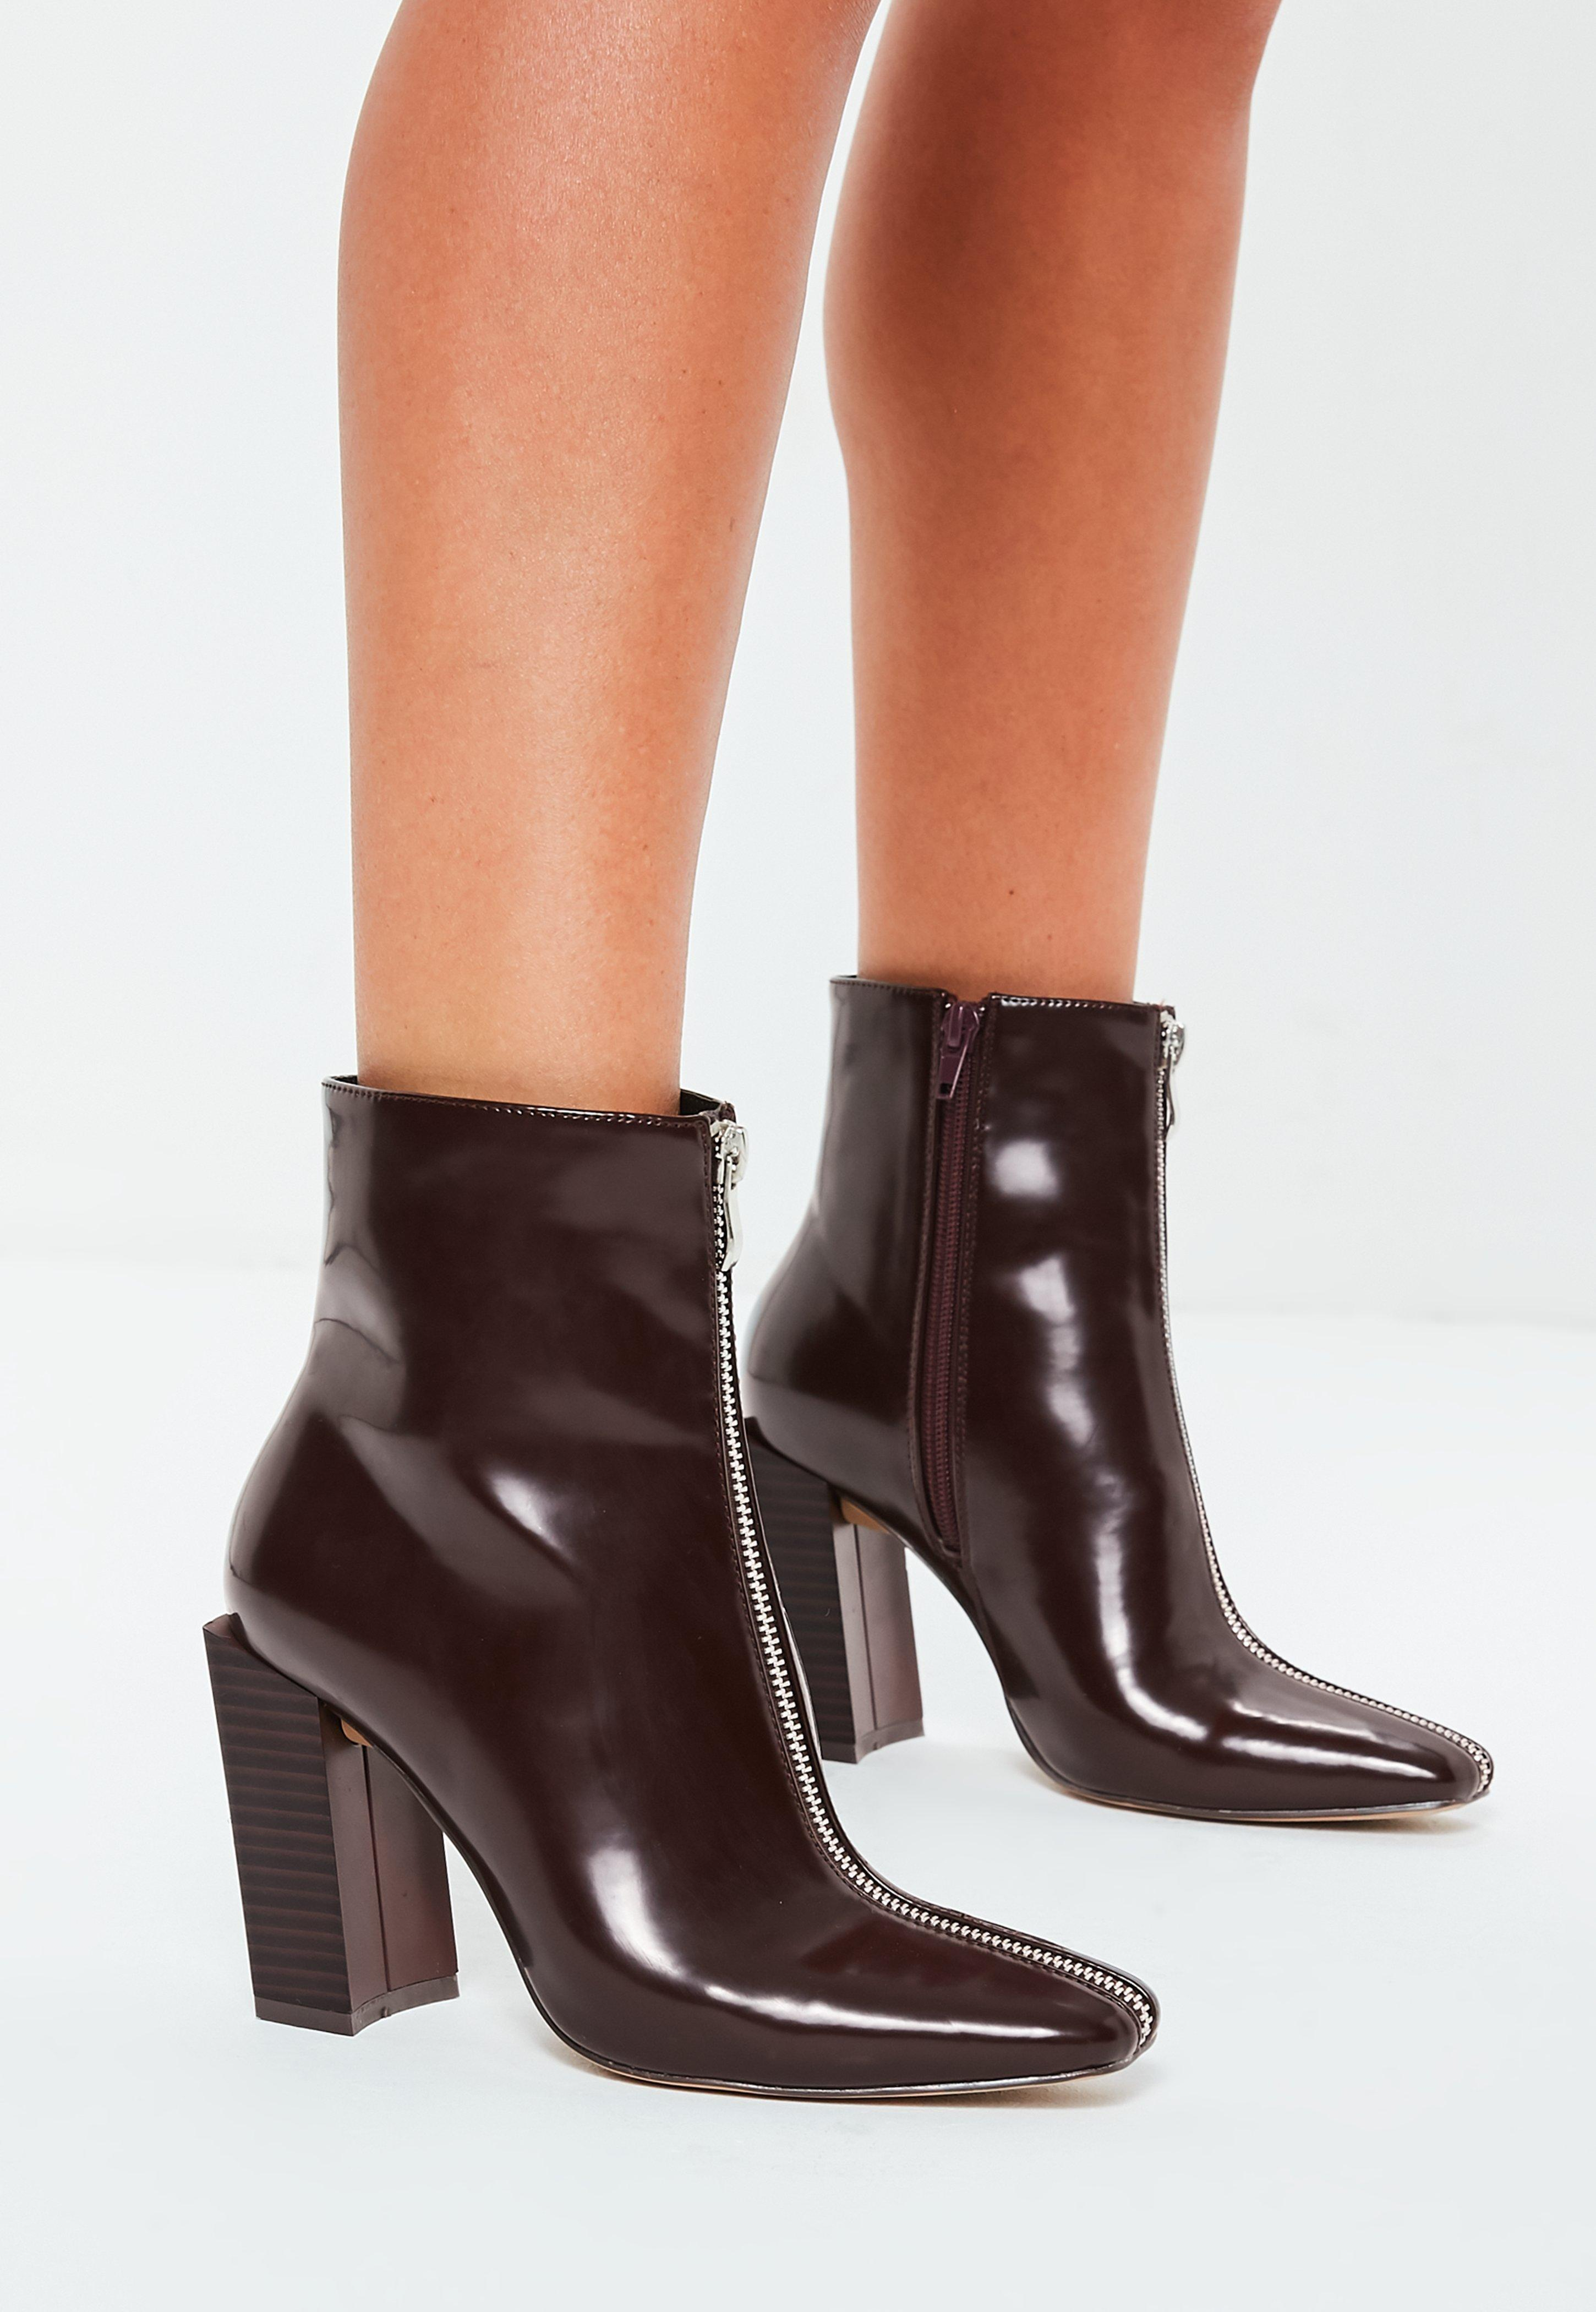 06cc36a3cbd Missguided. Women s Burgundy Feature Heel Full Zip Ankle Boots